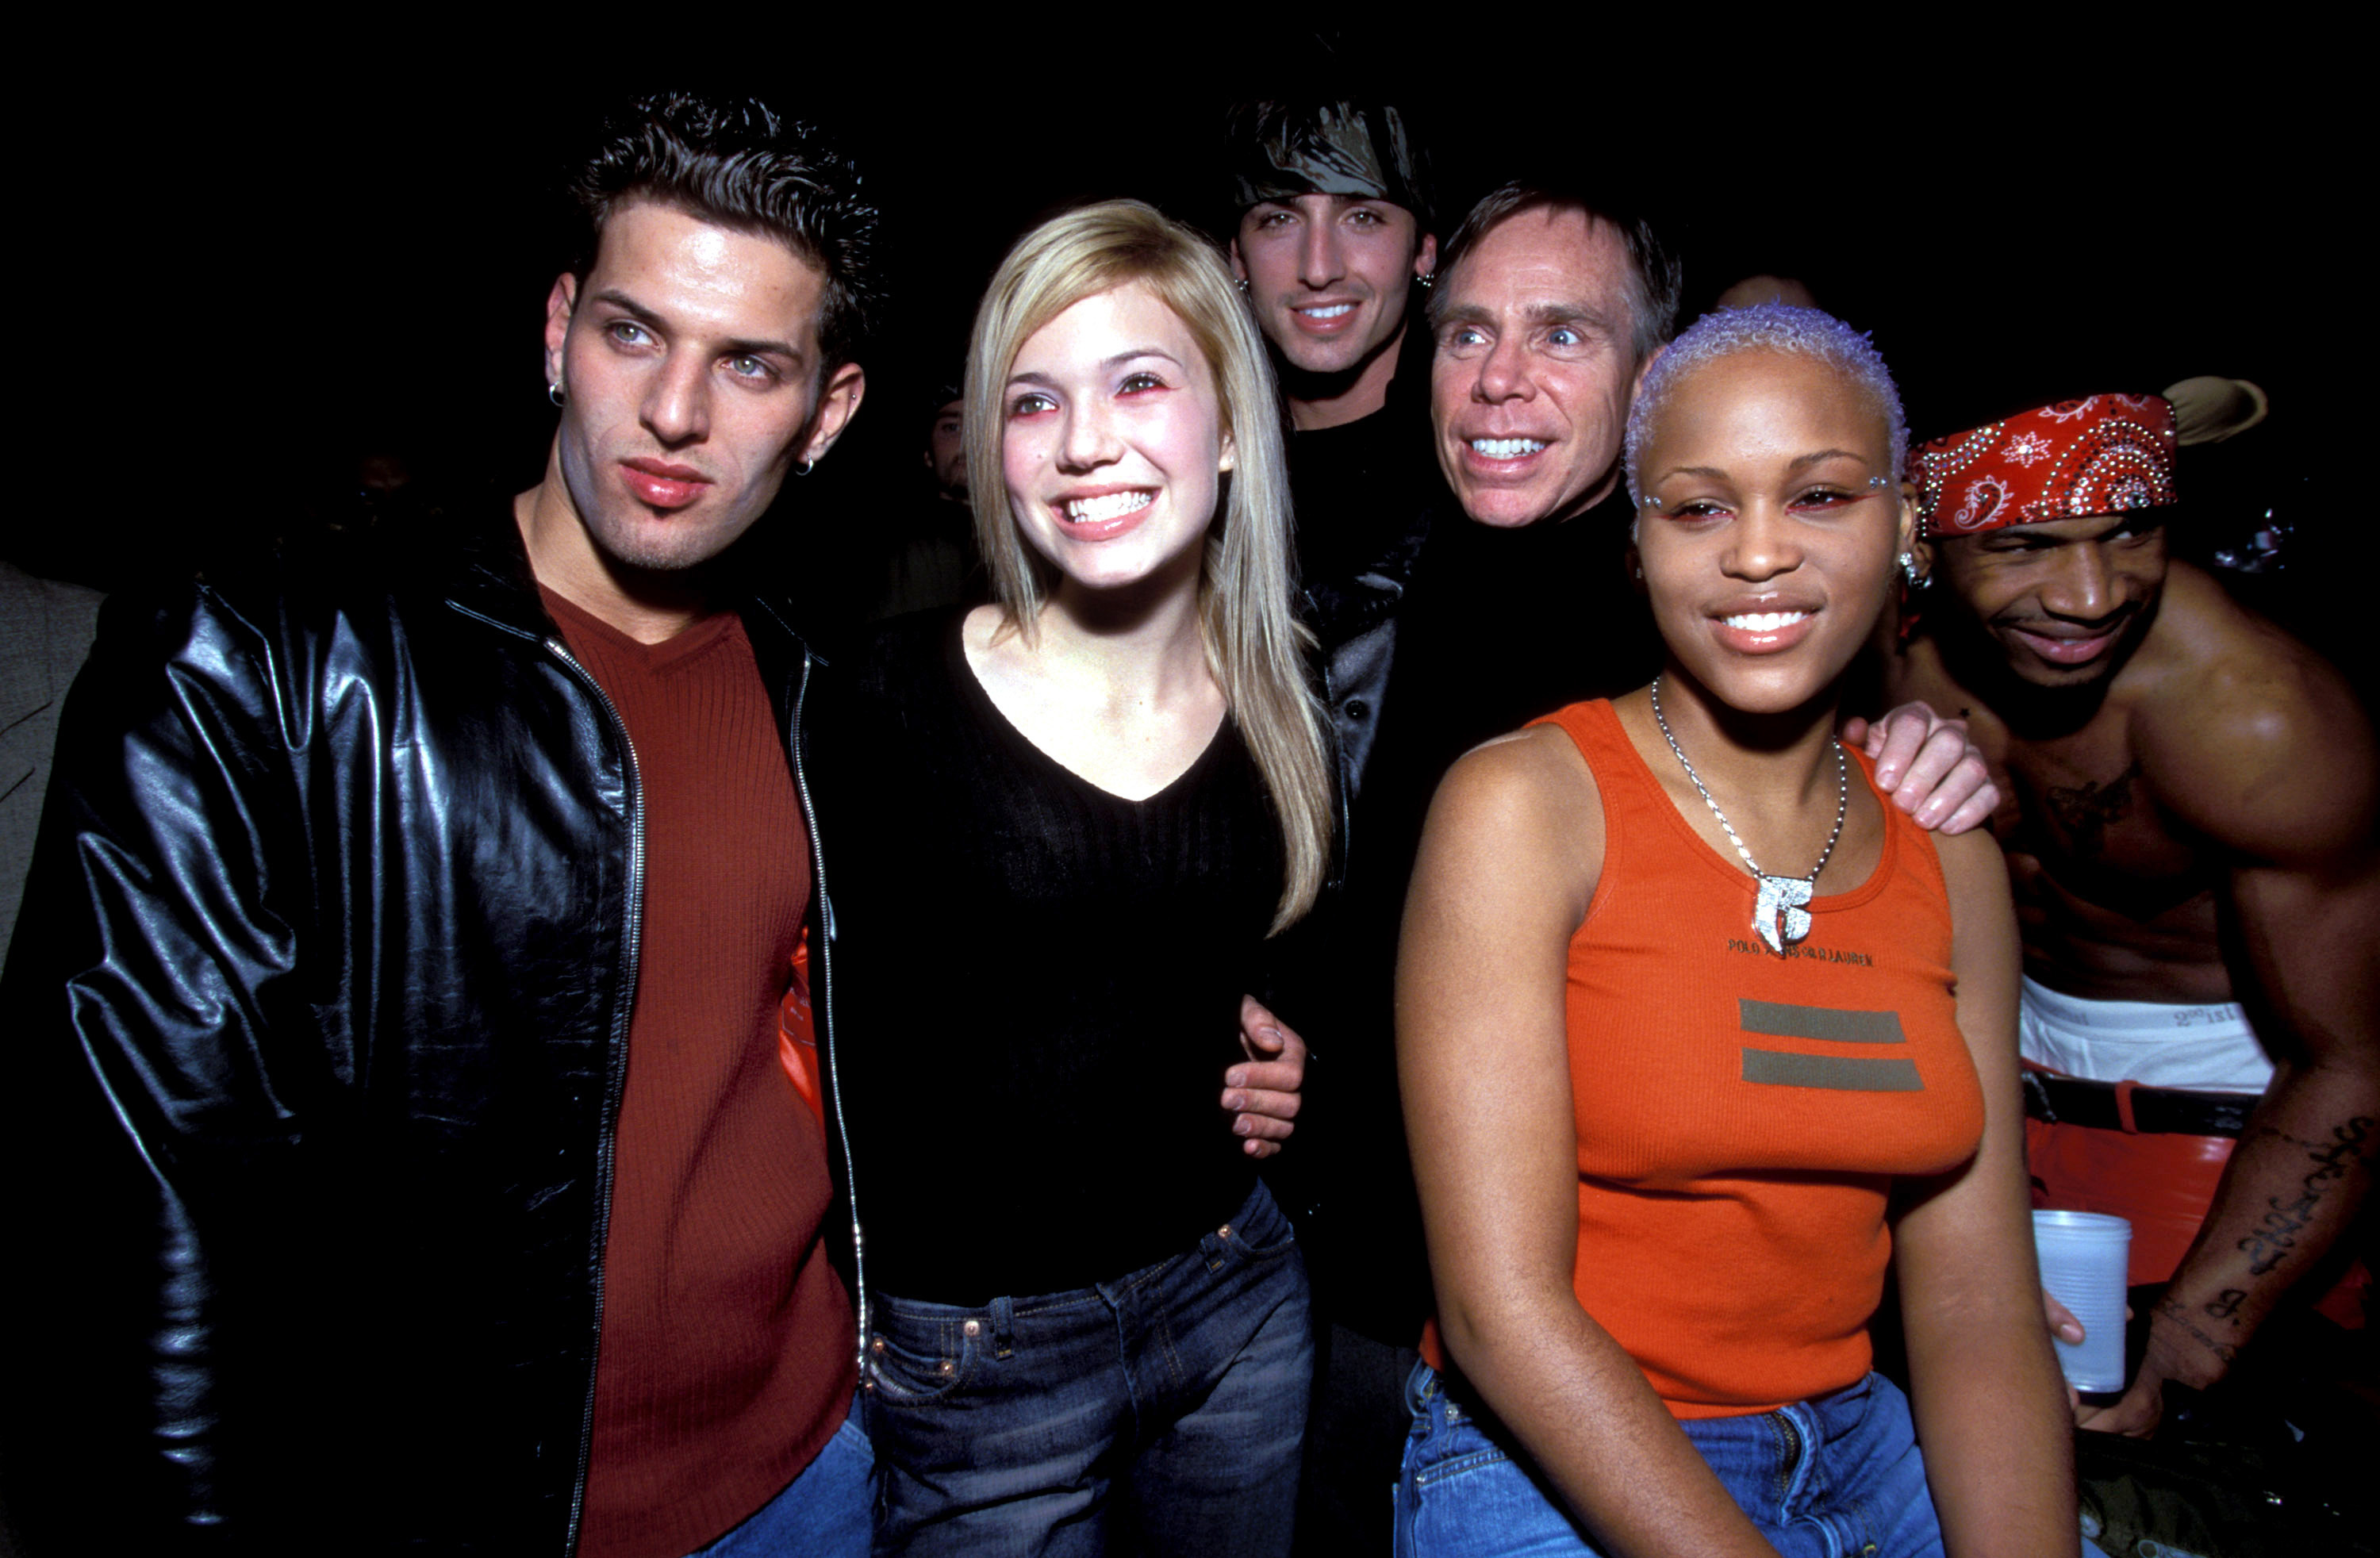 LFO, Mandy Moore, Tommy Hilfiger, and Eve pose at Hilfiger's fall 2000 fashion show.